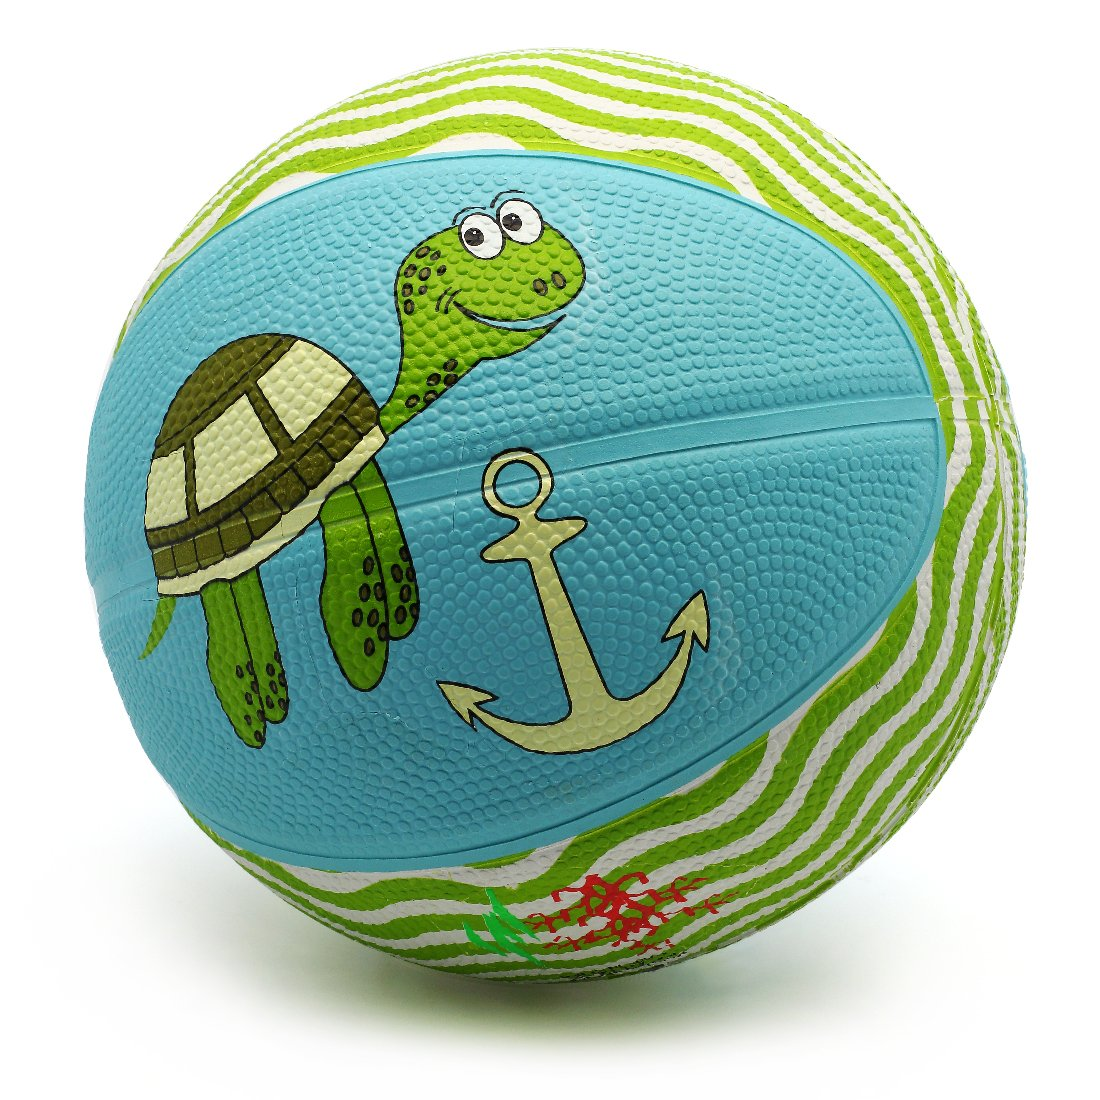 Picador Cute Cartoon Design Basketball Indoor/Outdoor Sport Ball for Kids, Children's Day, Youth, Scool, Girls, Boys, Kindergarten, Size 3 (Turtle)